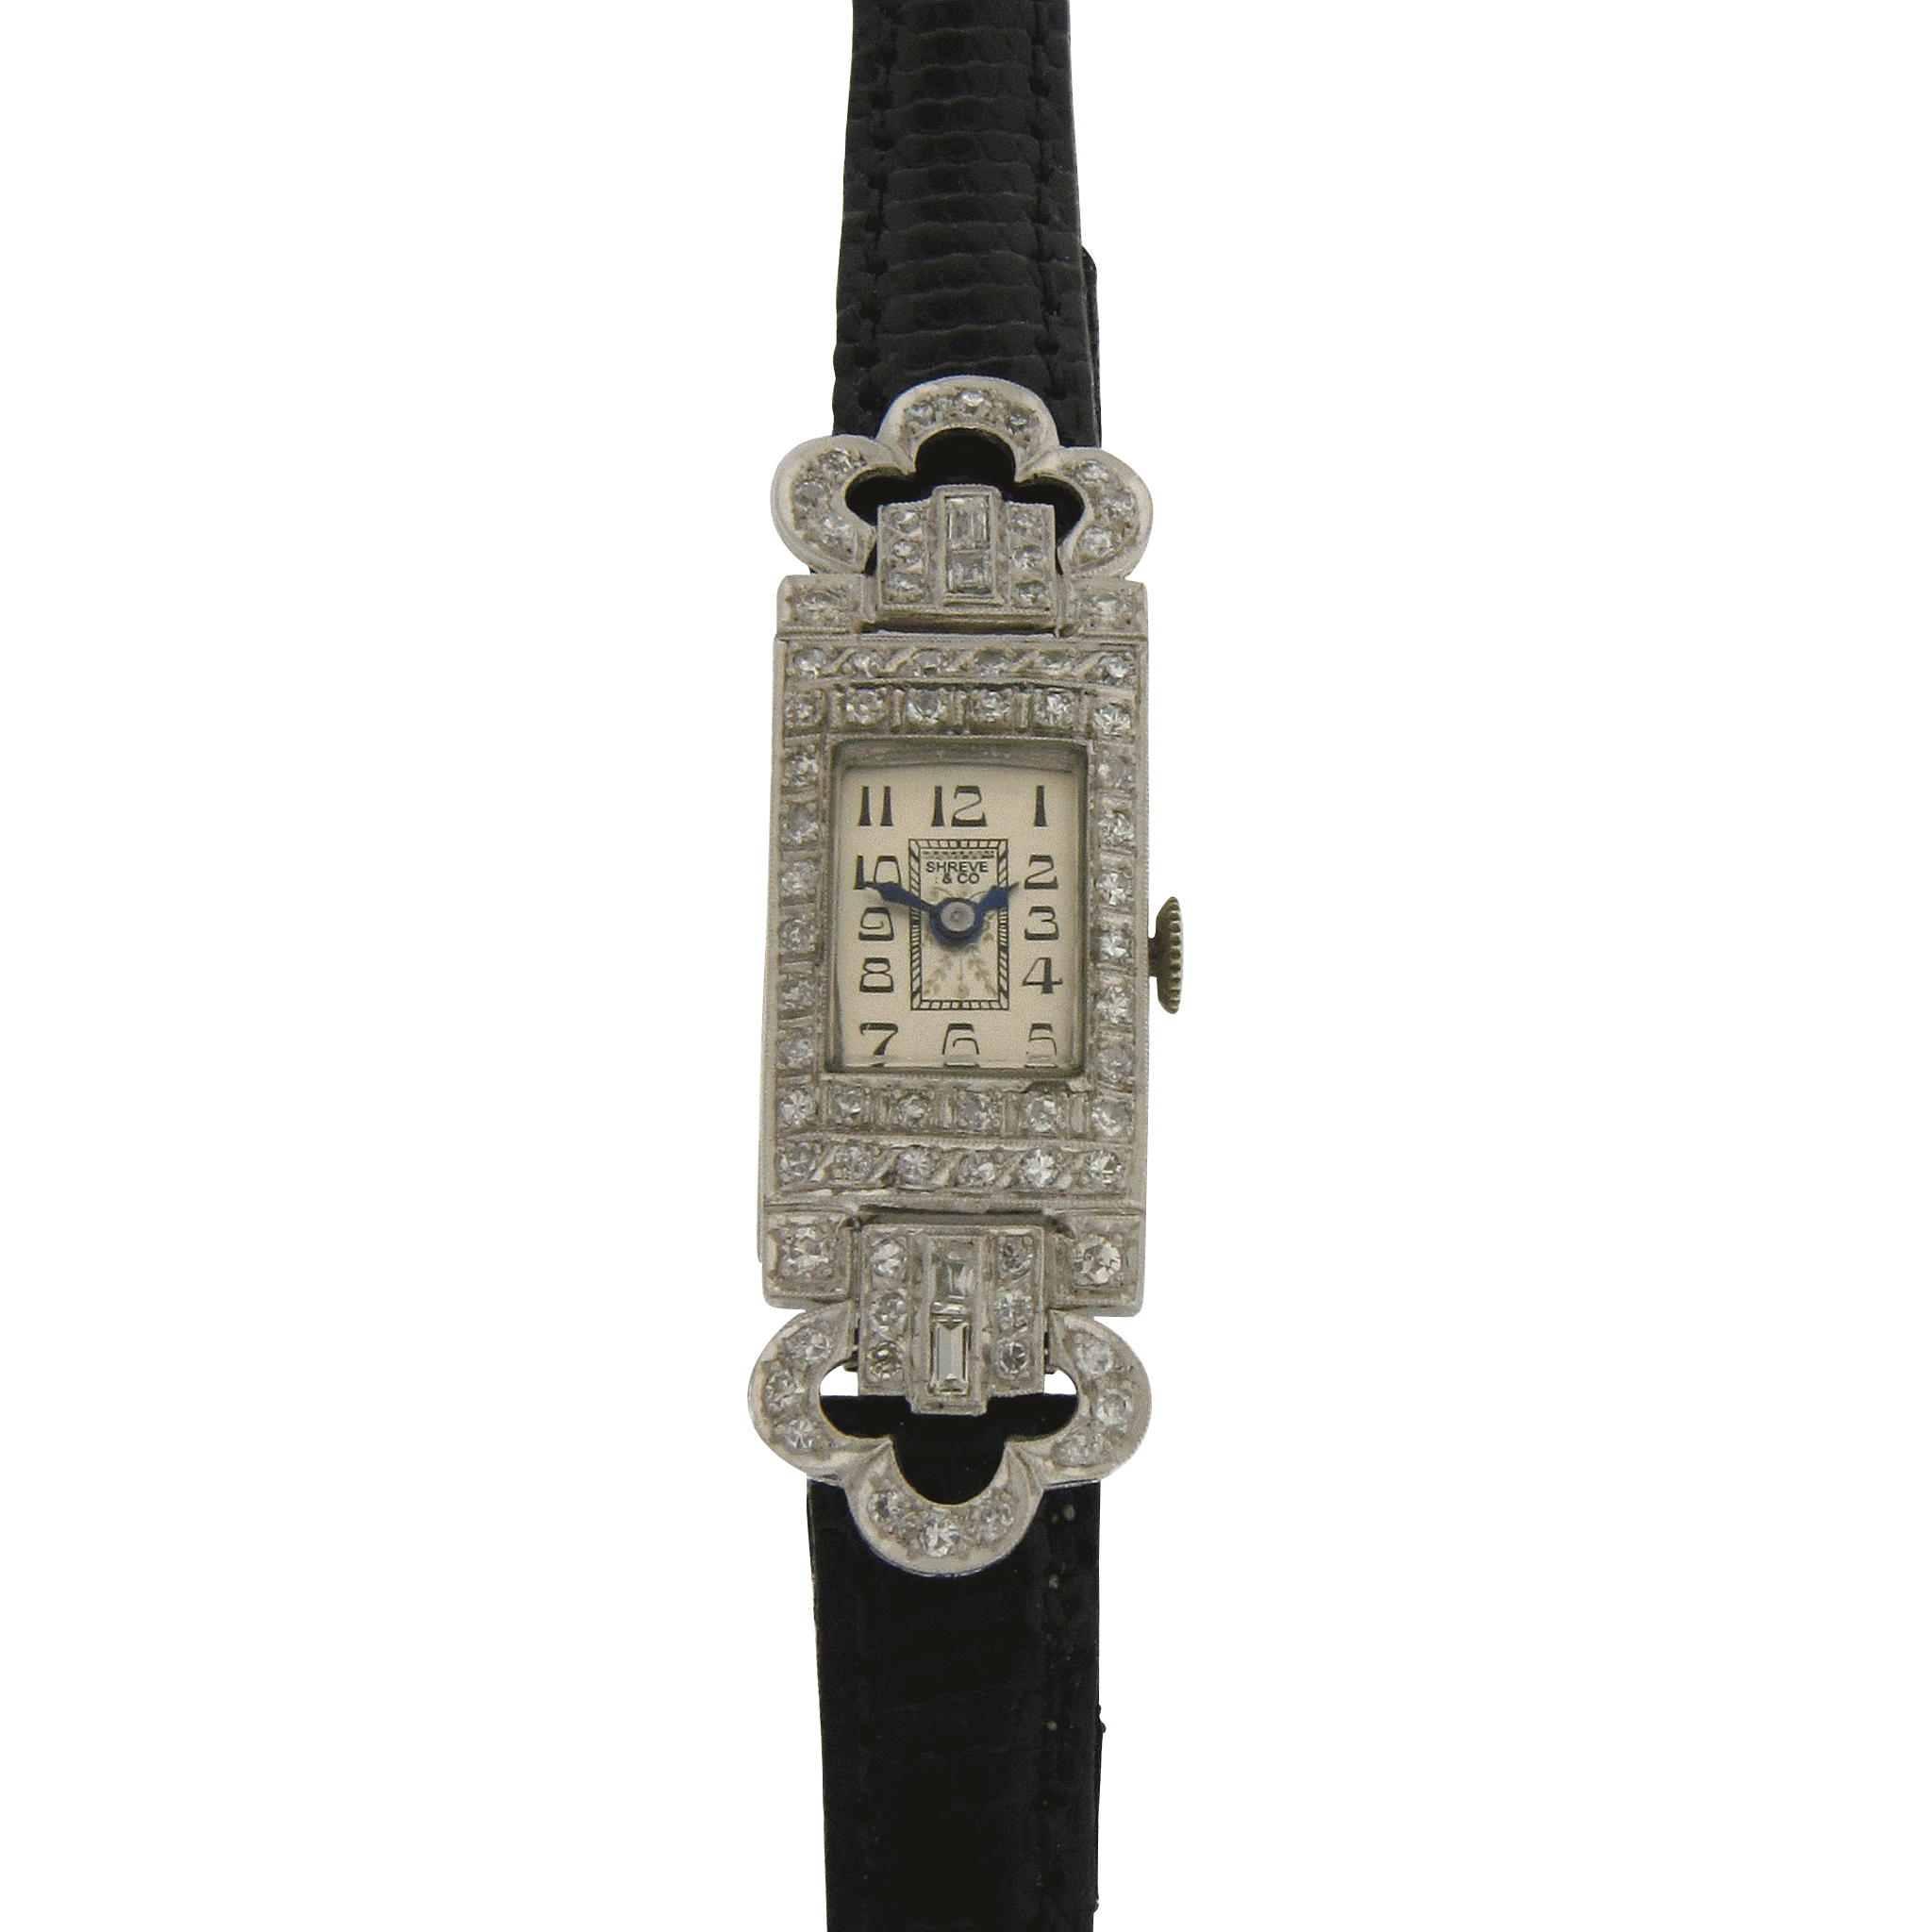 Art Deco Ladies Wrist Watch by Shreve & Co. in Platinum